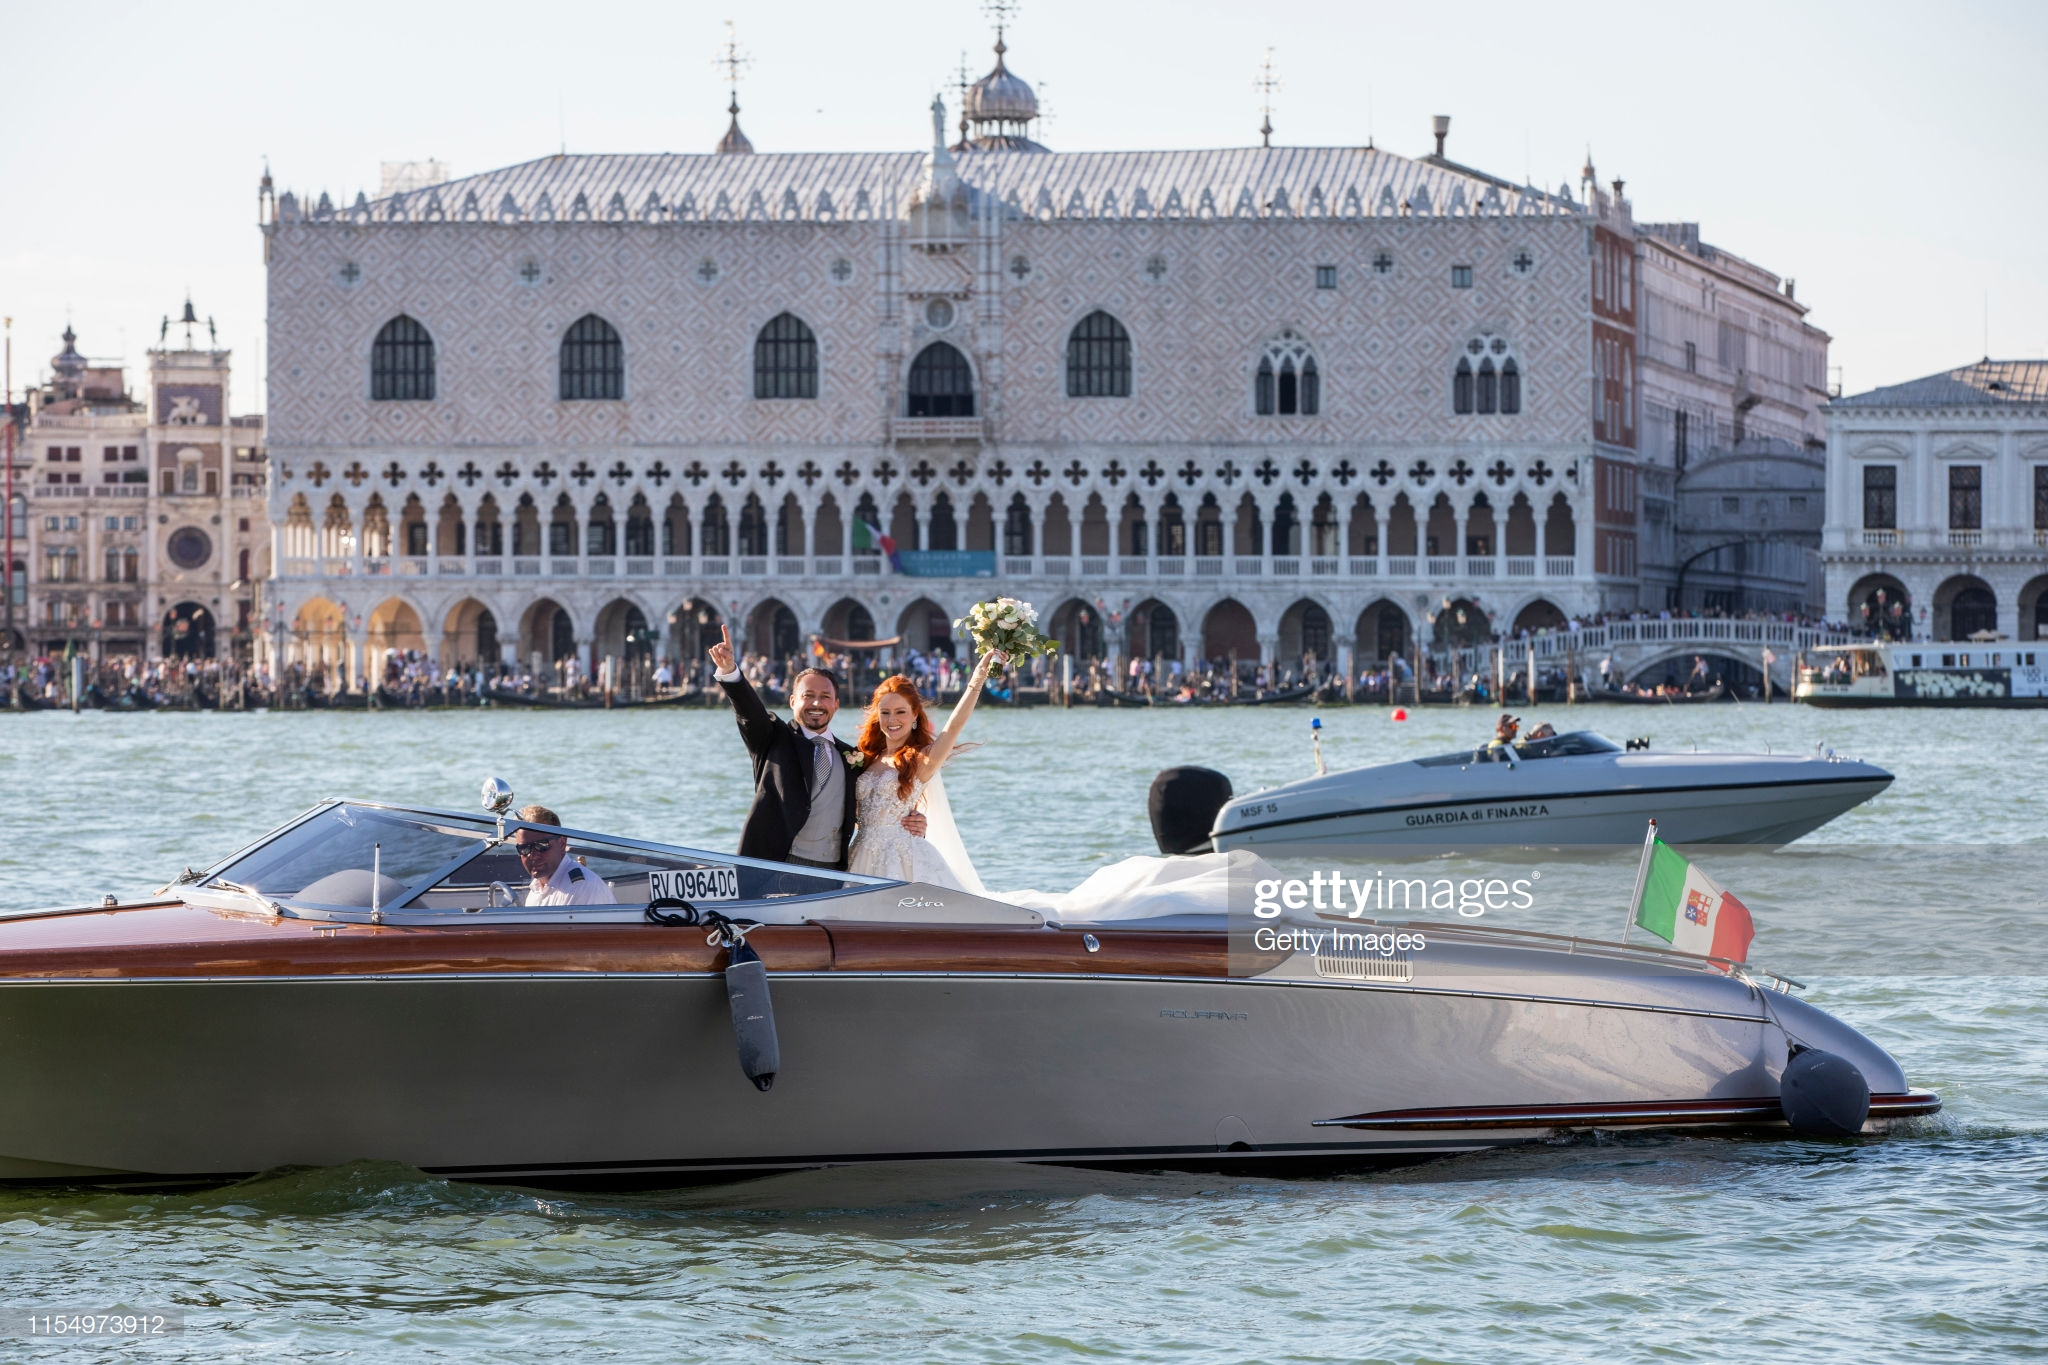 gettyimages-1154973912-2048x2048.jpg